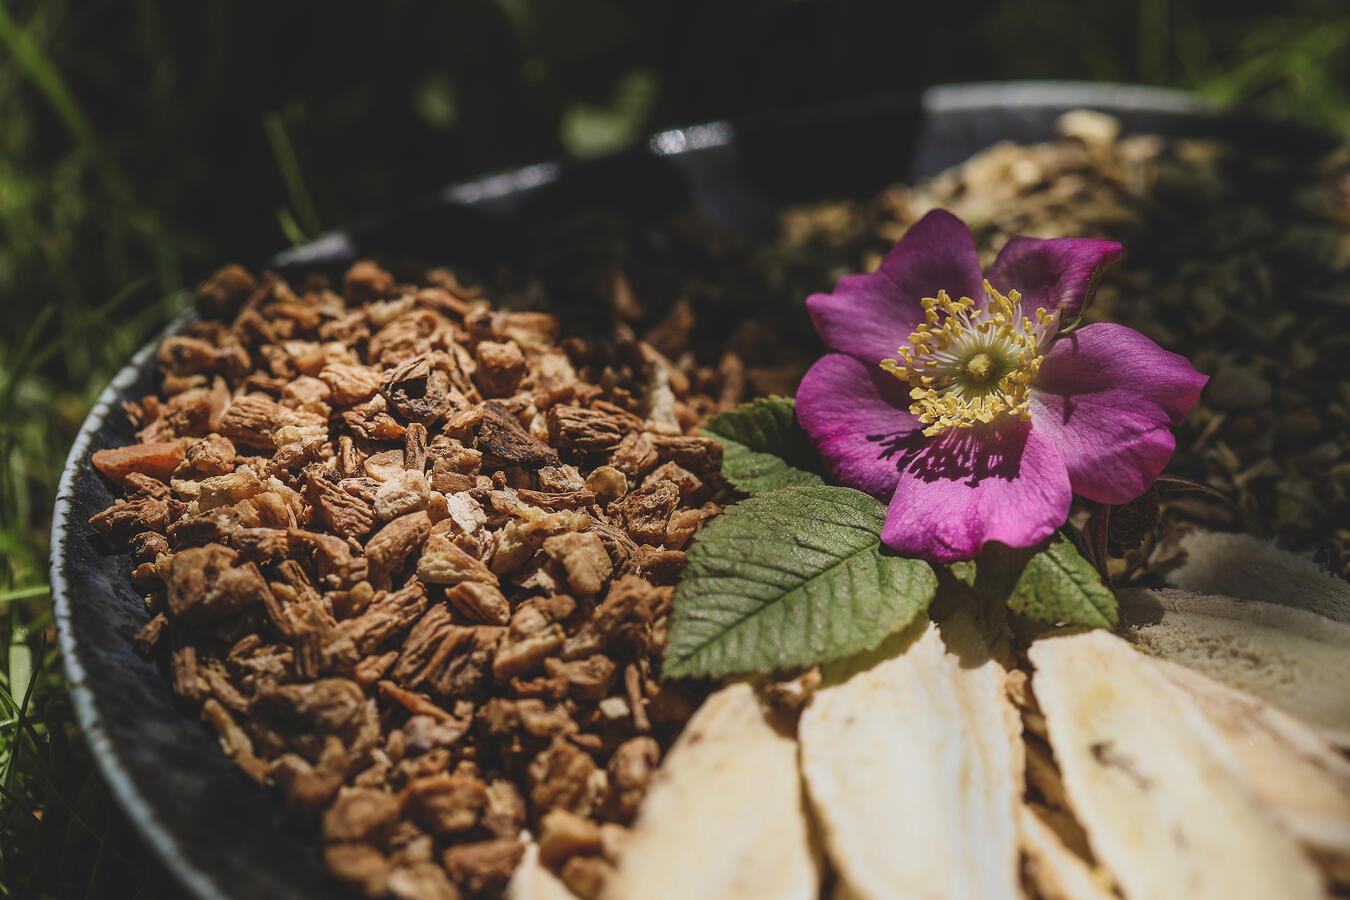 TCM herbs and a wild rose